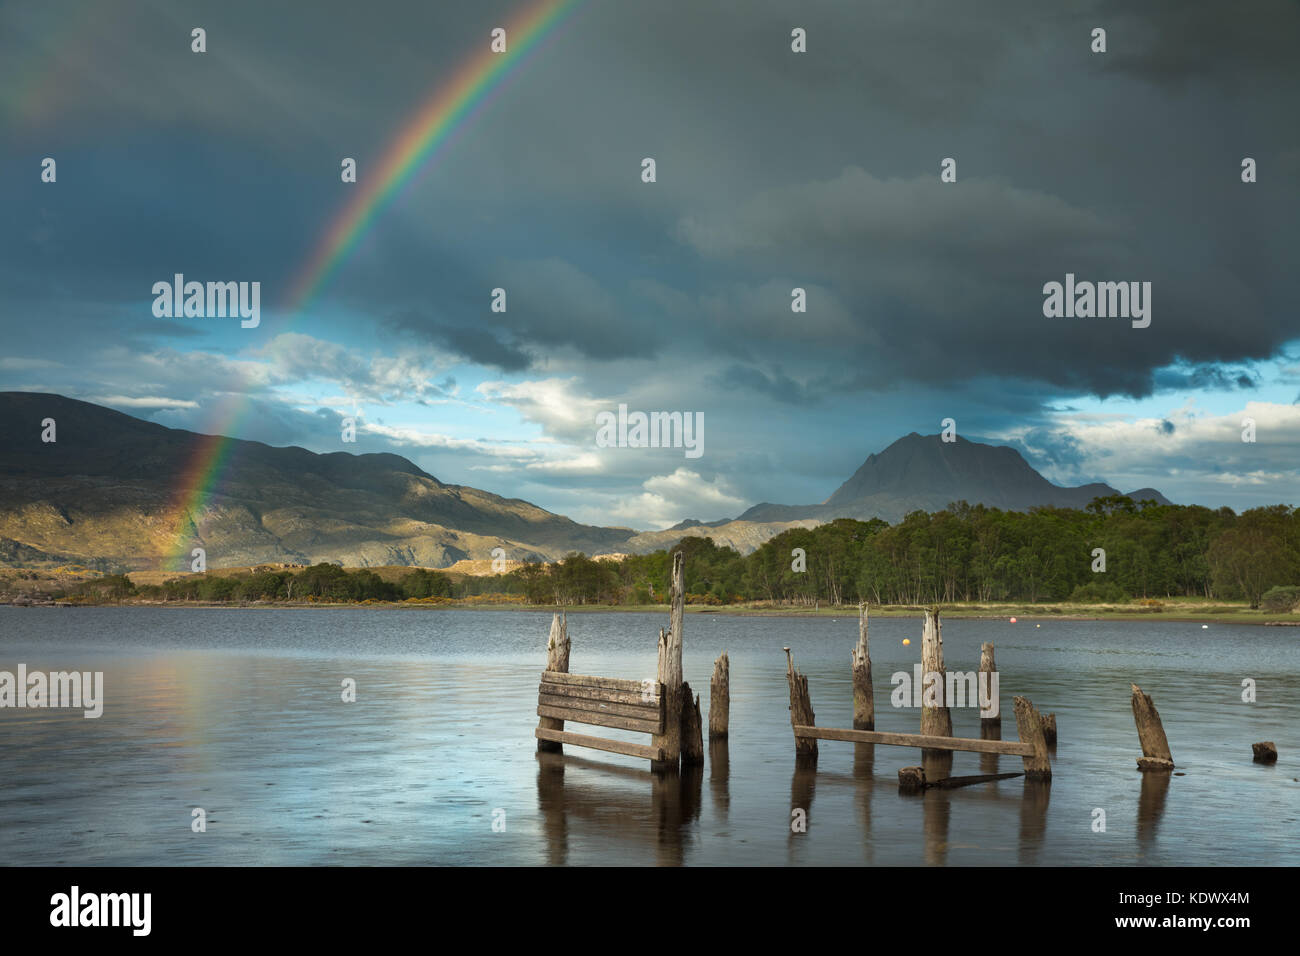 A rainbow over Loch Maree & Slioch, Wester Ross, Scotland, UK - Stock Image